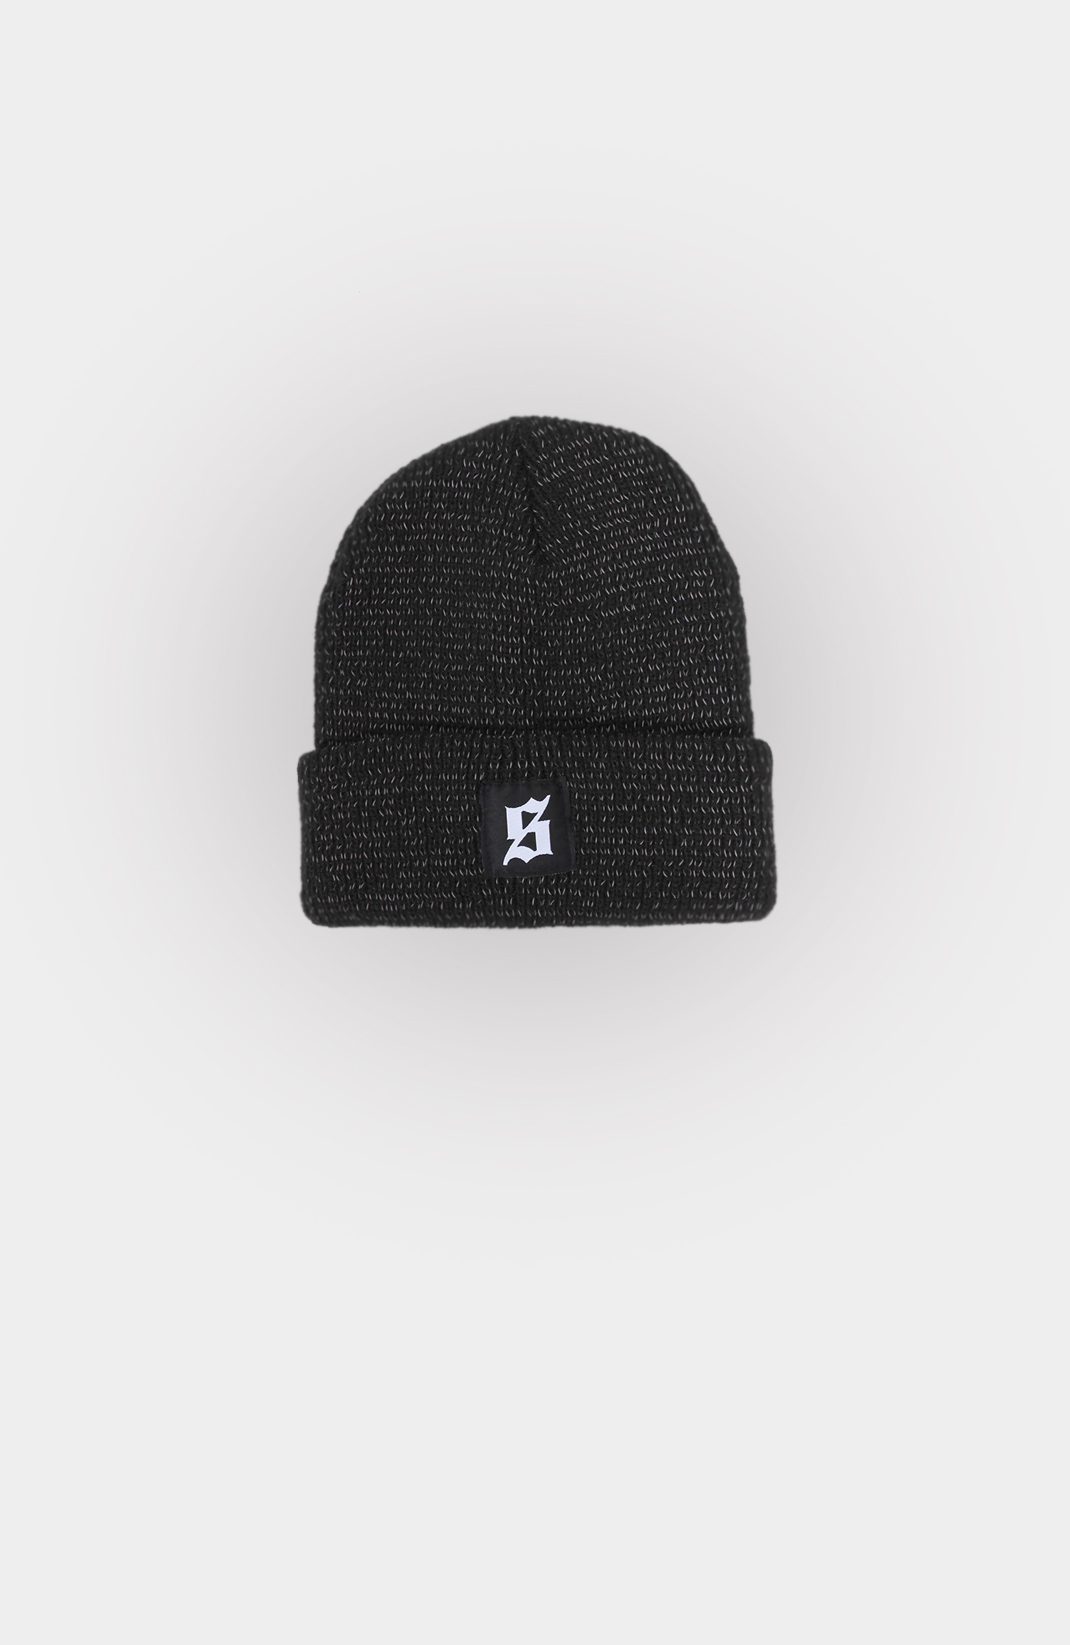 de01567ac22 Set 3M Reflective Beanie via Set Store Online   setstore.co.uk